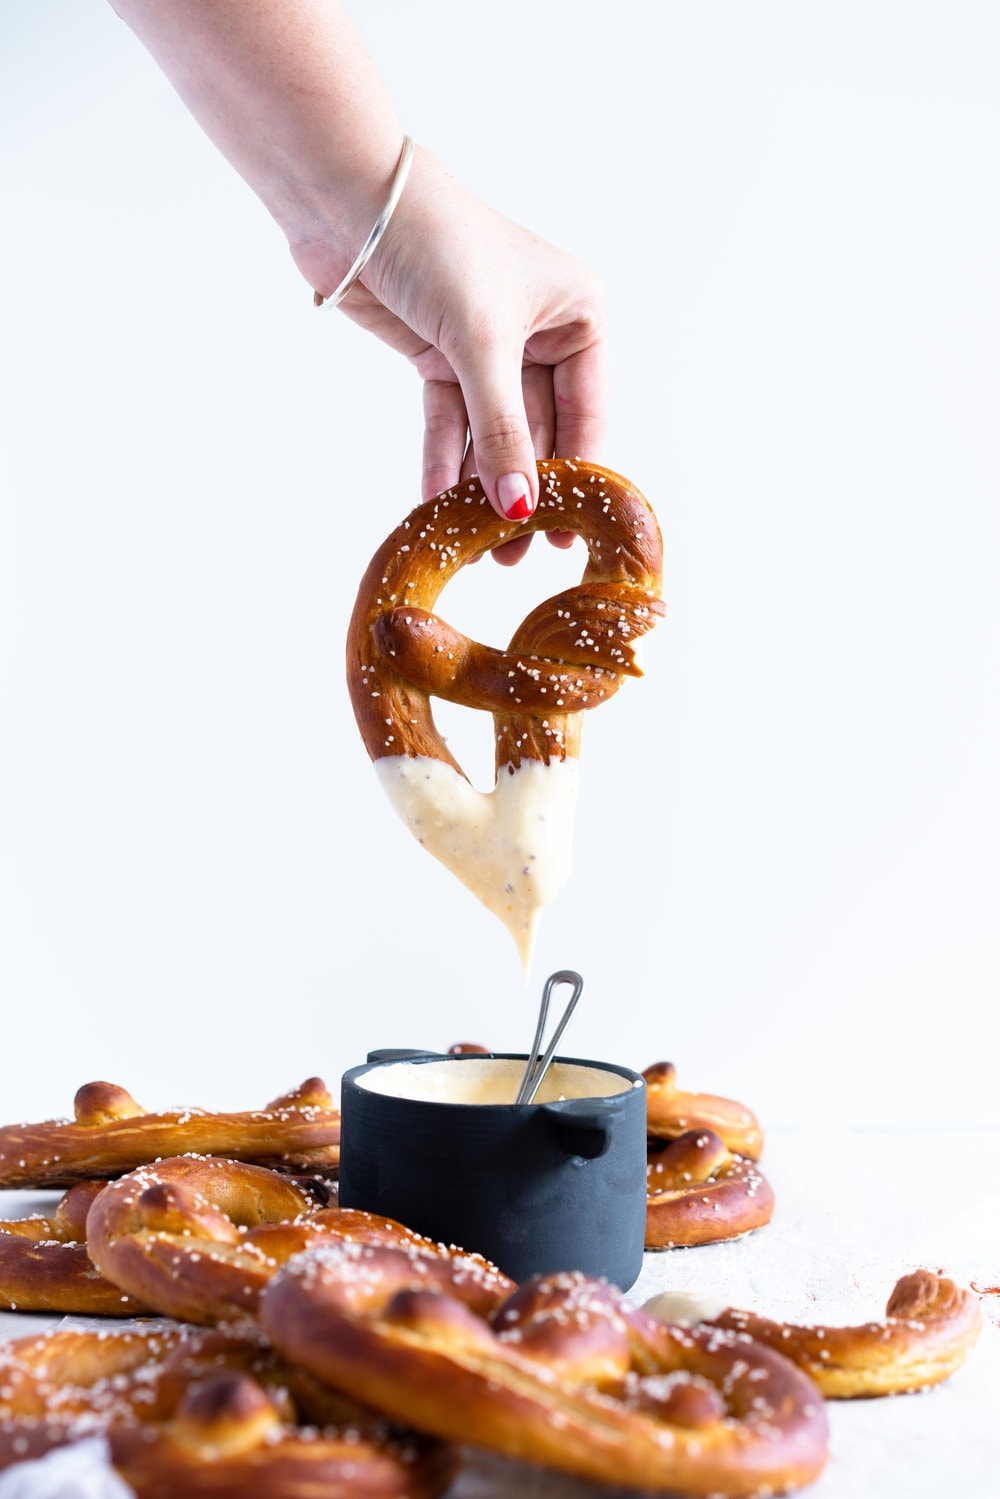 Authentic pretzels, baked until perfectly soft and golden brown, dipped in a super easy cheesy mustard dipping sauce that comes together extremely quickly. The perfect snack for a crowd. #pretzels #cheesesauce #cheesedip #americancheese #bread #homemadepretzels #bakingsodadip